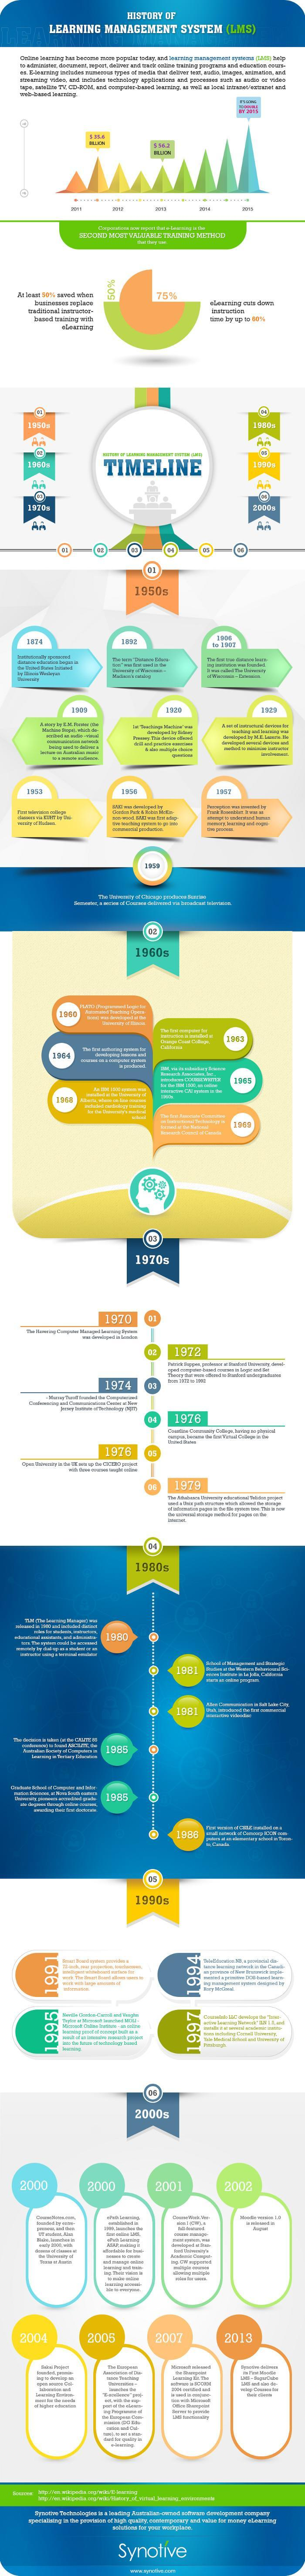 The Learning Management System Timeline Infographic